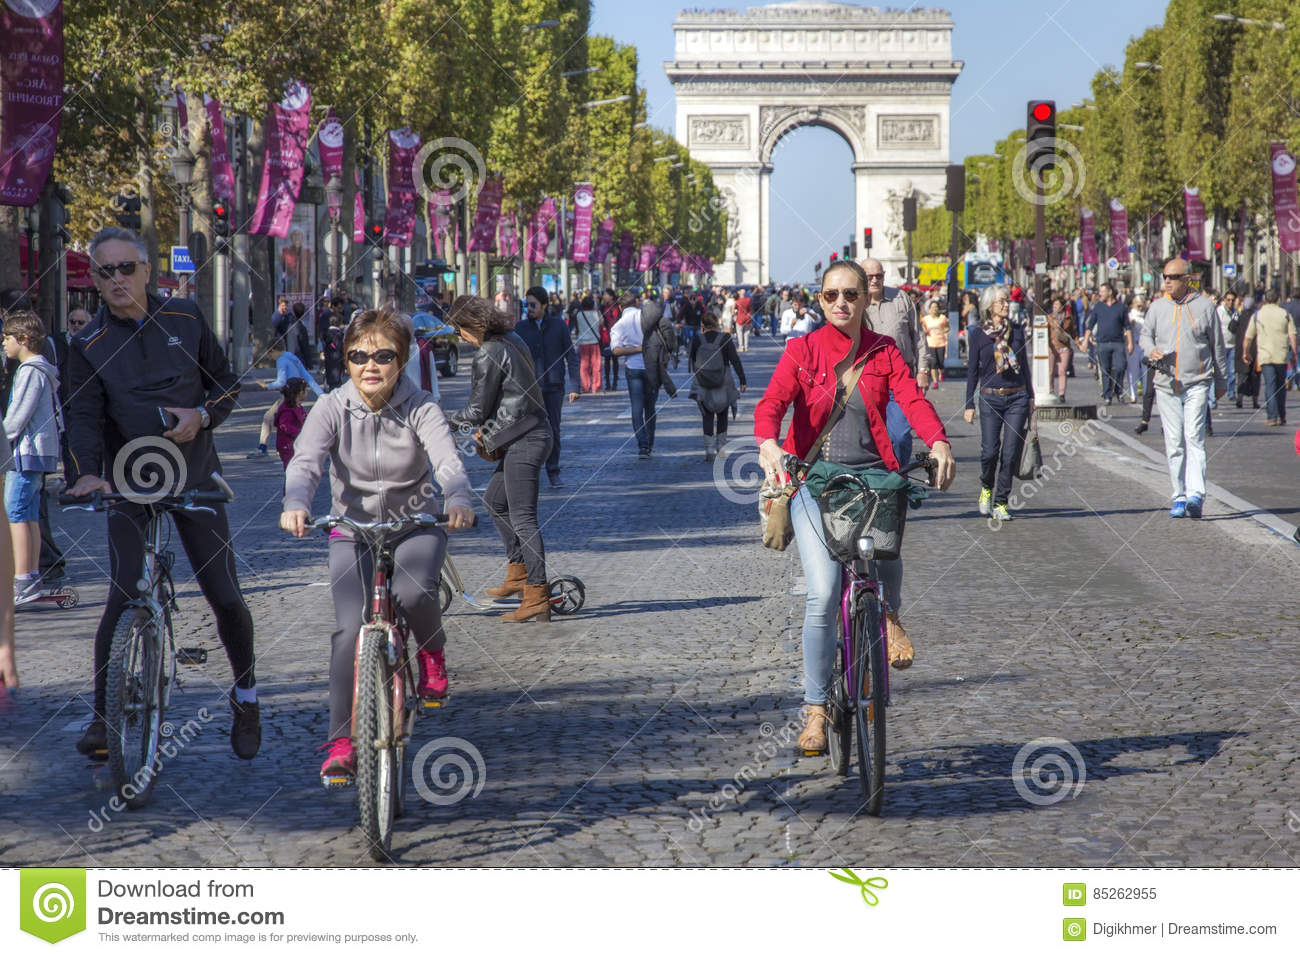 Cyclists on Champs Elysees at Paris car free day